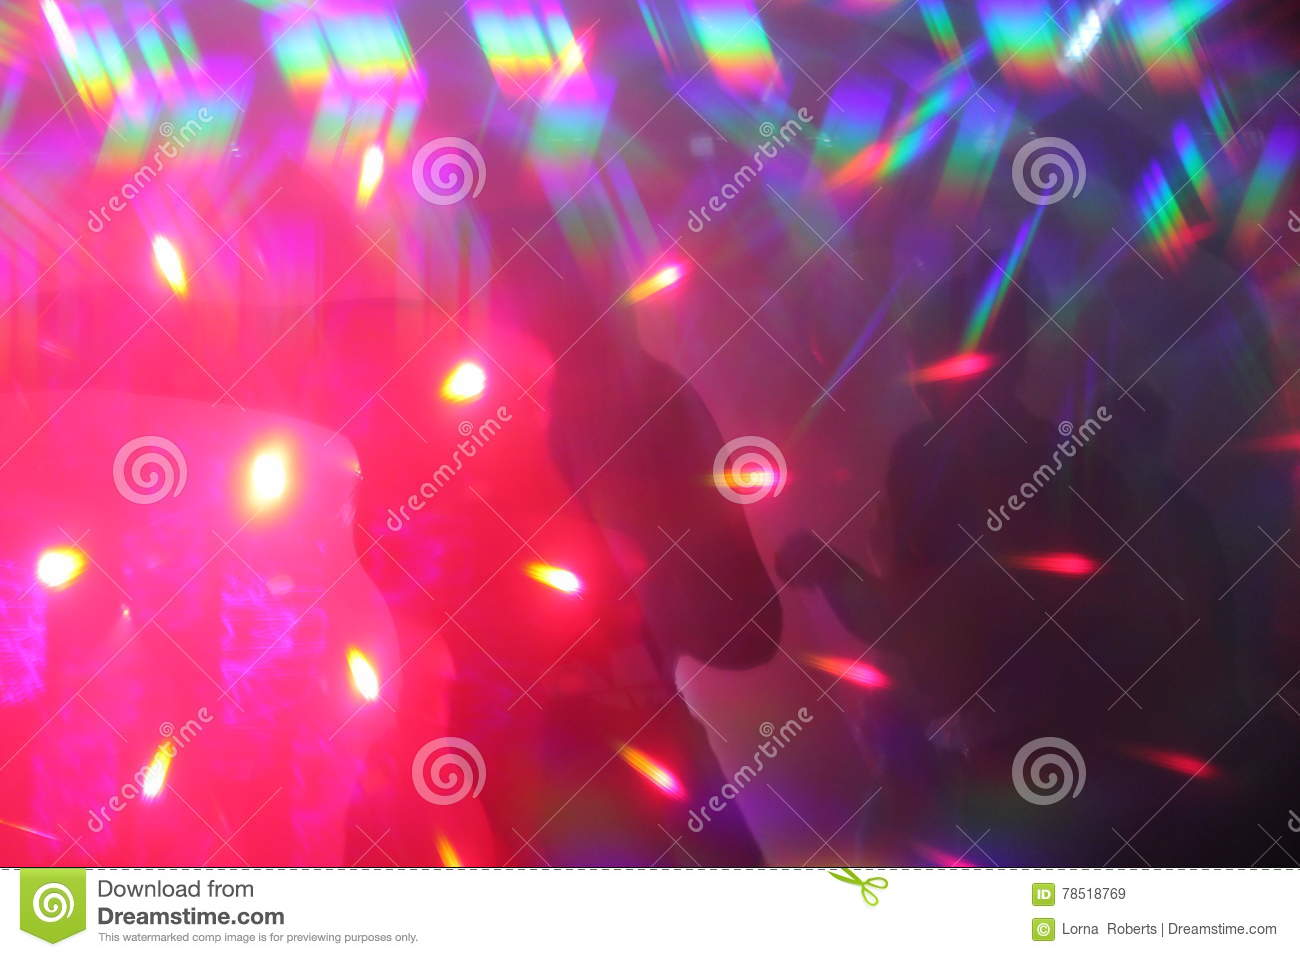 Fancy Club Light Effects In A Dark Background Stock: Nightclub Background Abstract Lights Dance Party